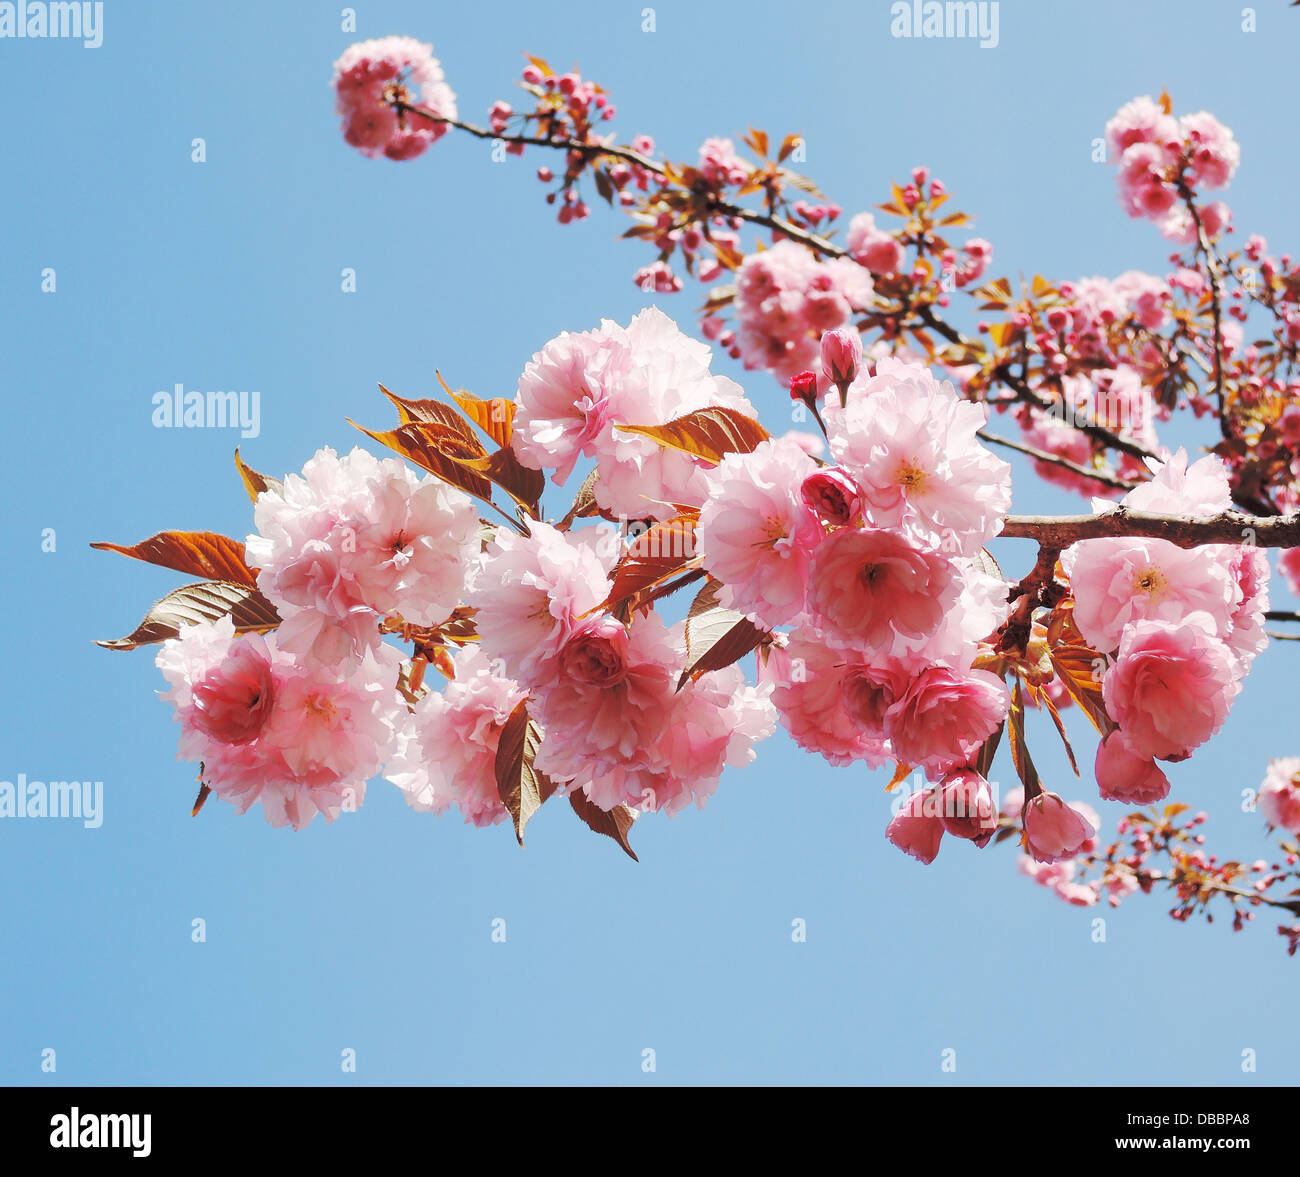 Cherry Blossom Branch High Resolution Stock Photography And Images Alamy